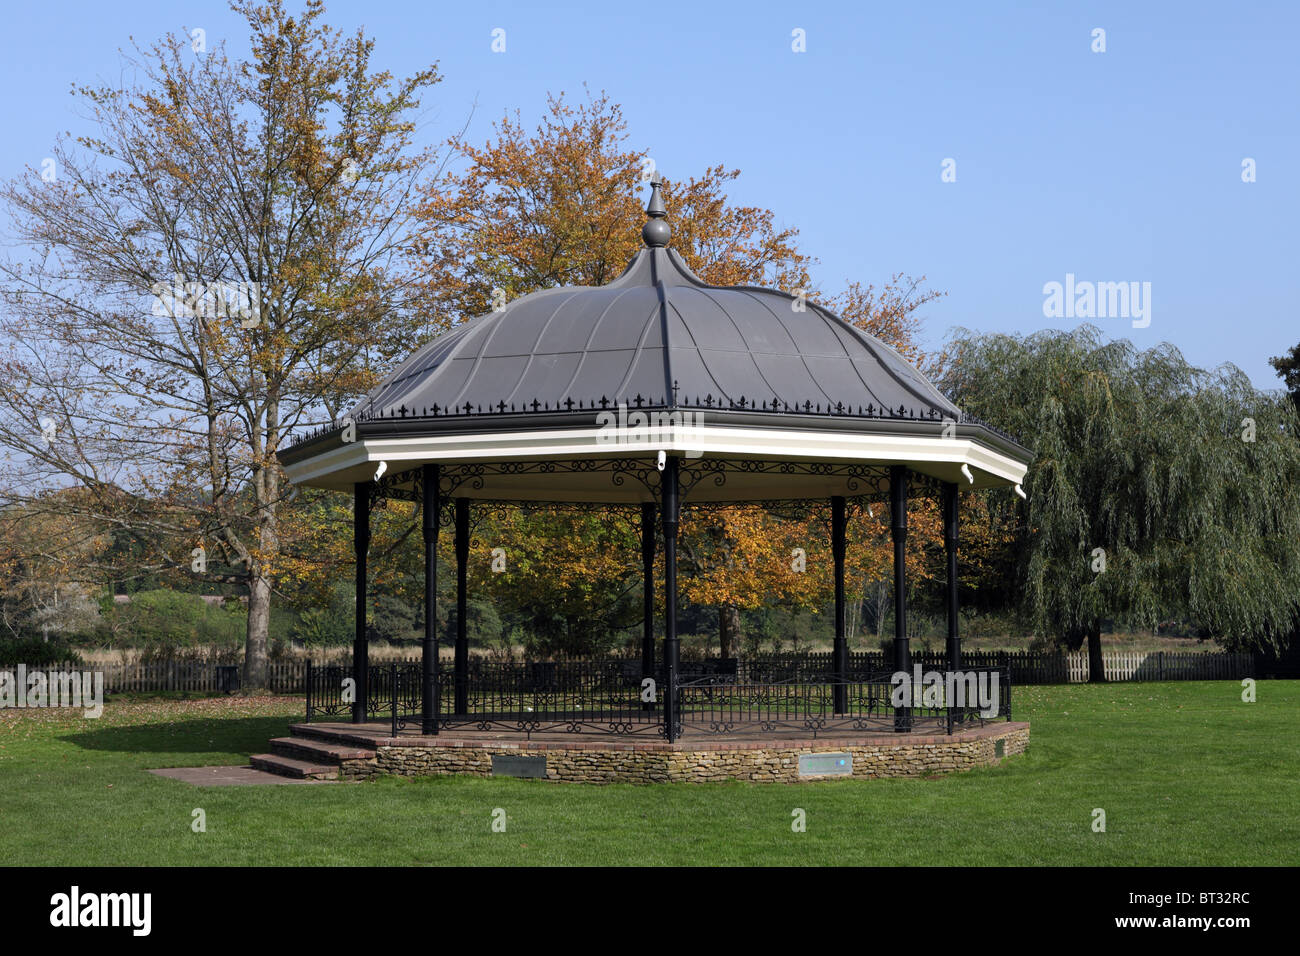 Bandstand at The Burys in Godalming, Surrey - Stock Image